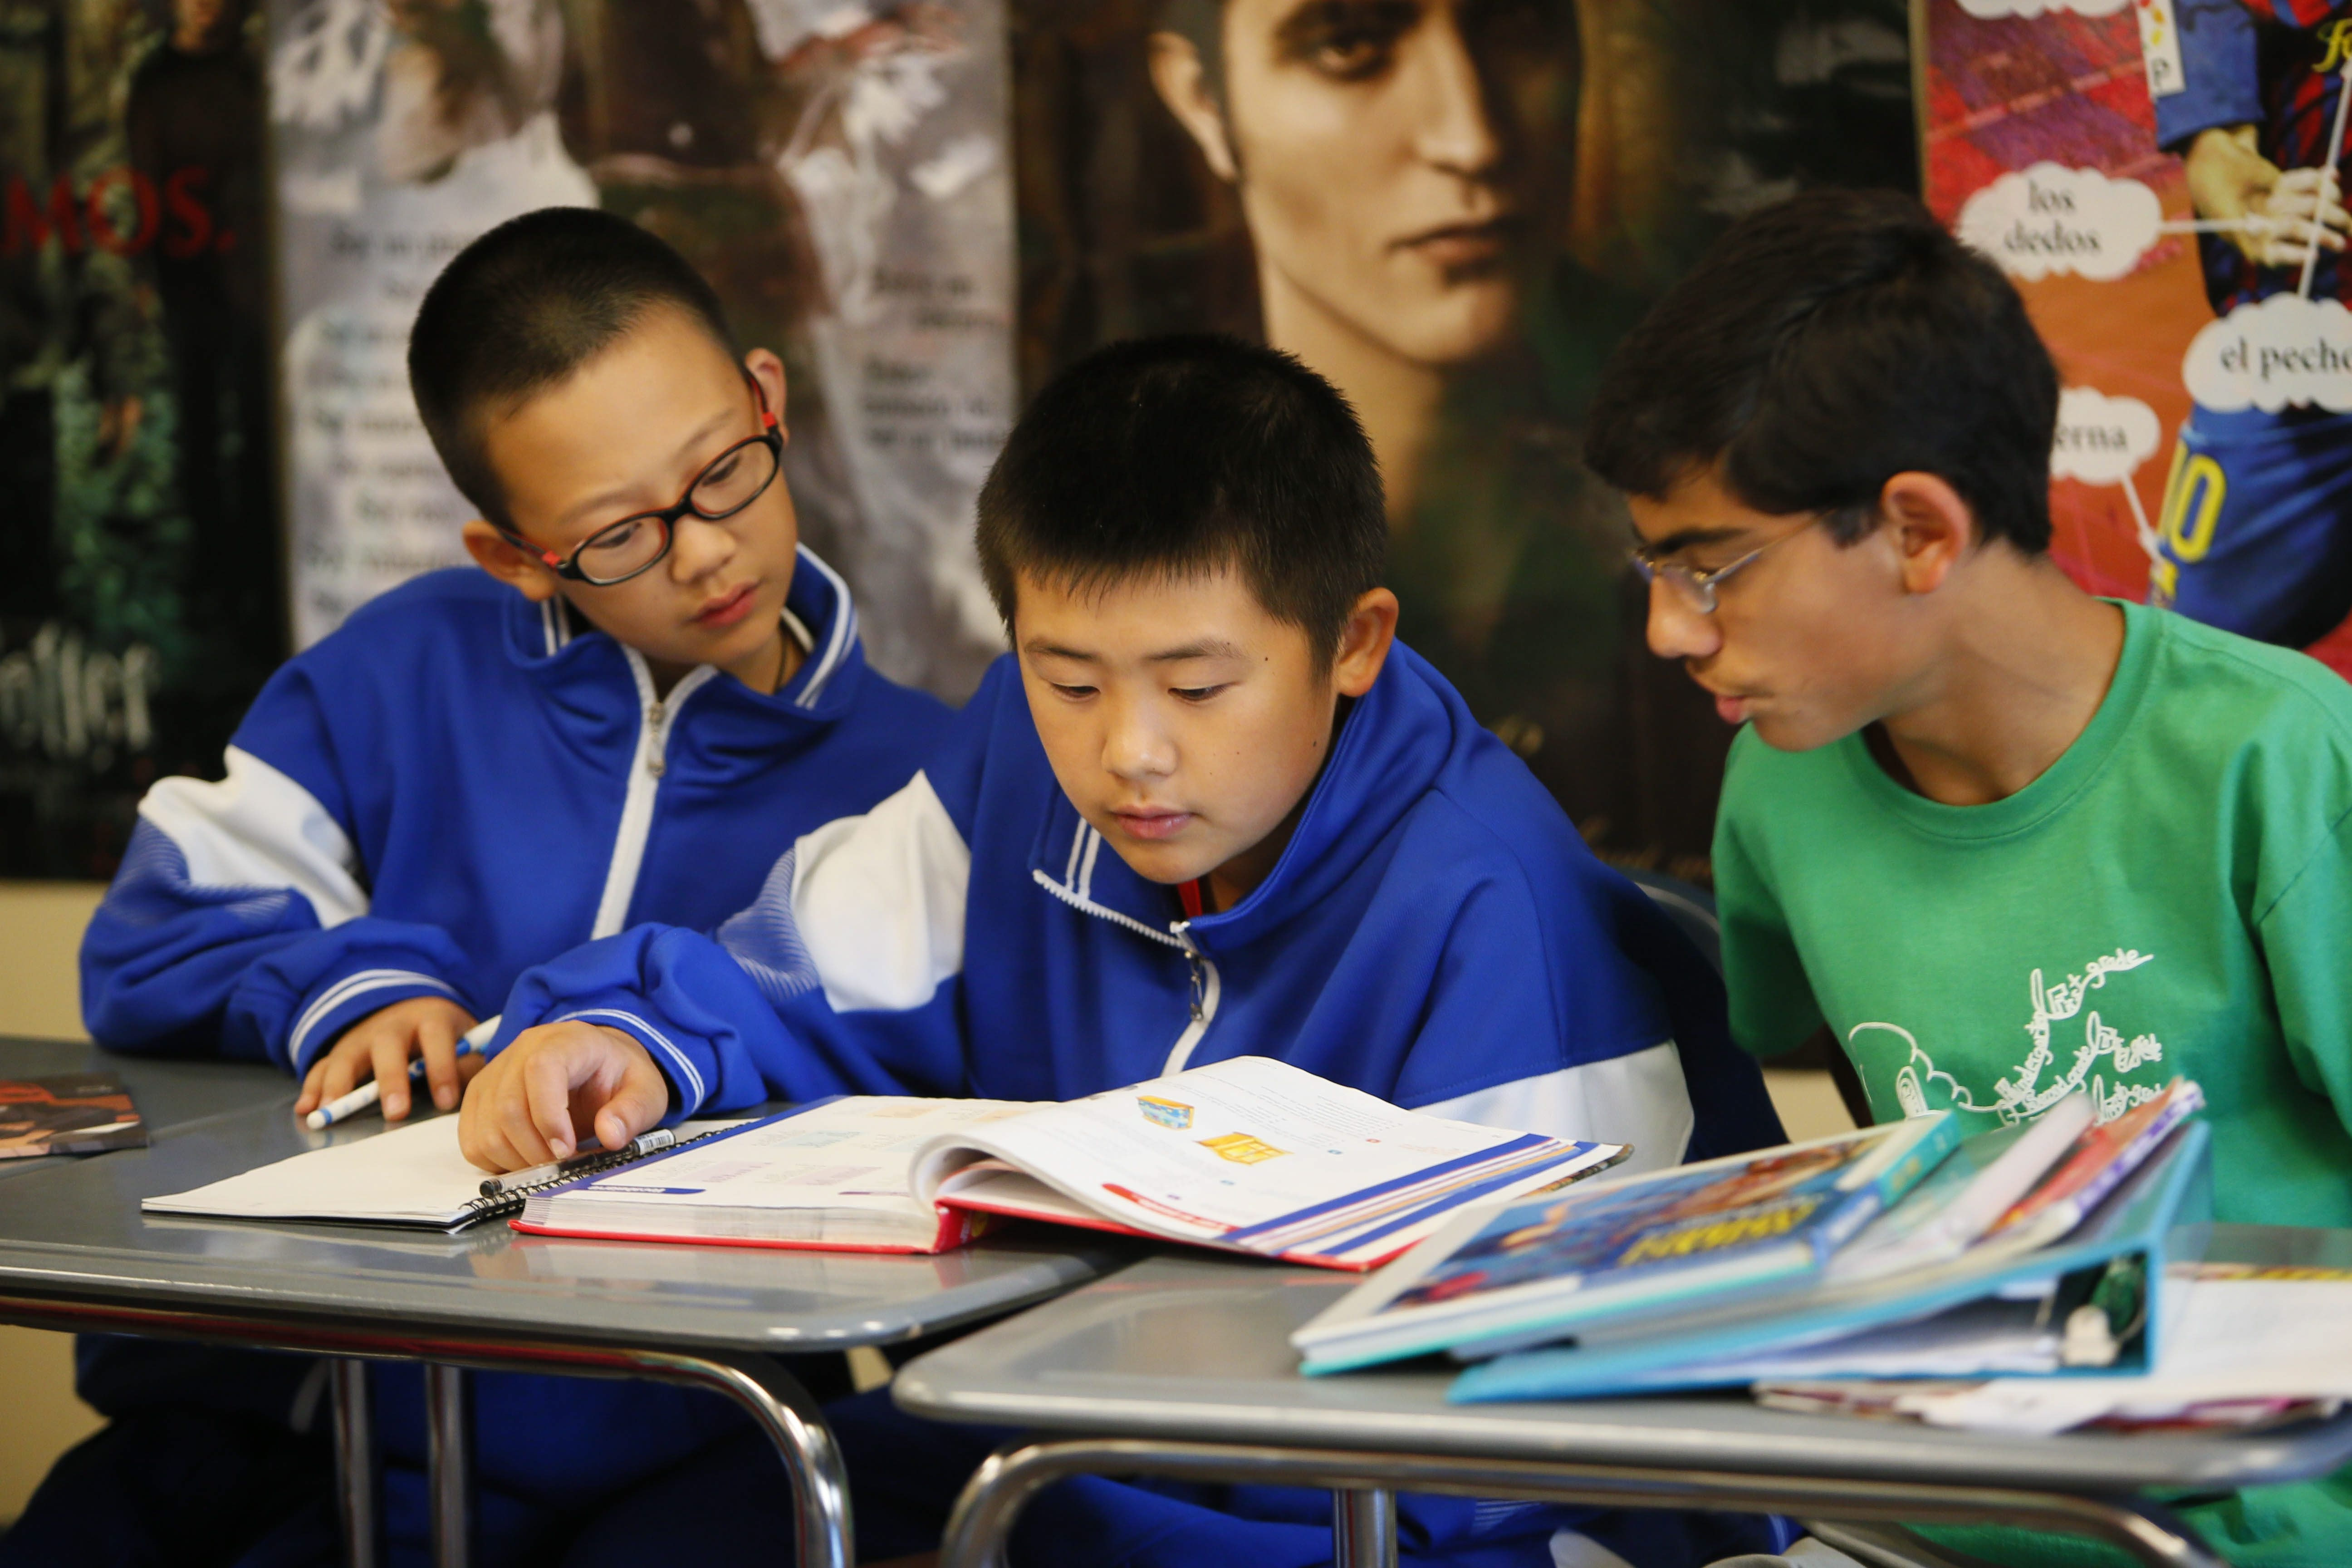 From left, Chinese exchange students Kaixing Wang, left, and Liang Xiao, center, get help from host Tavi Berns as they participate in classes at Lake Shore Middle School in Angola on Thursday.